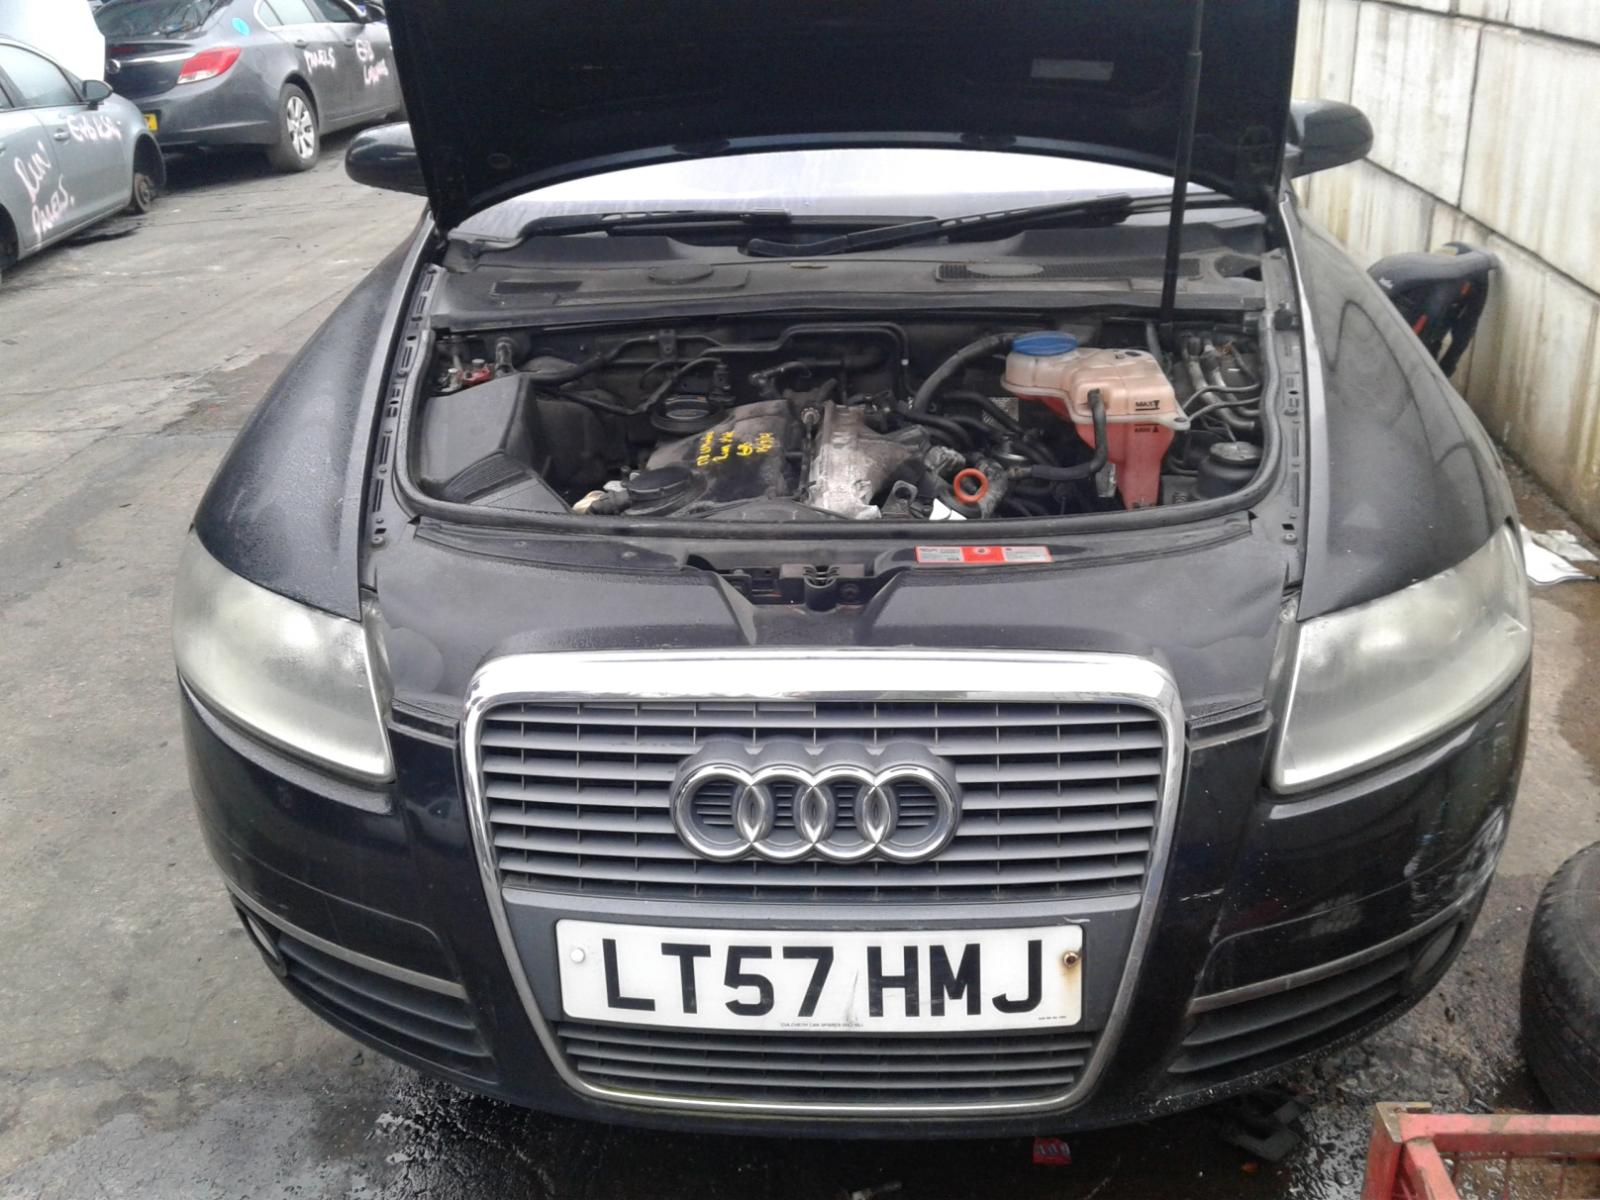 Image for a AUDI A6 2007 4 Door Saloon